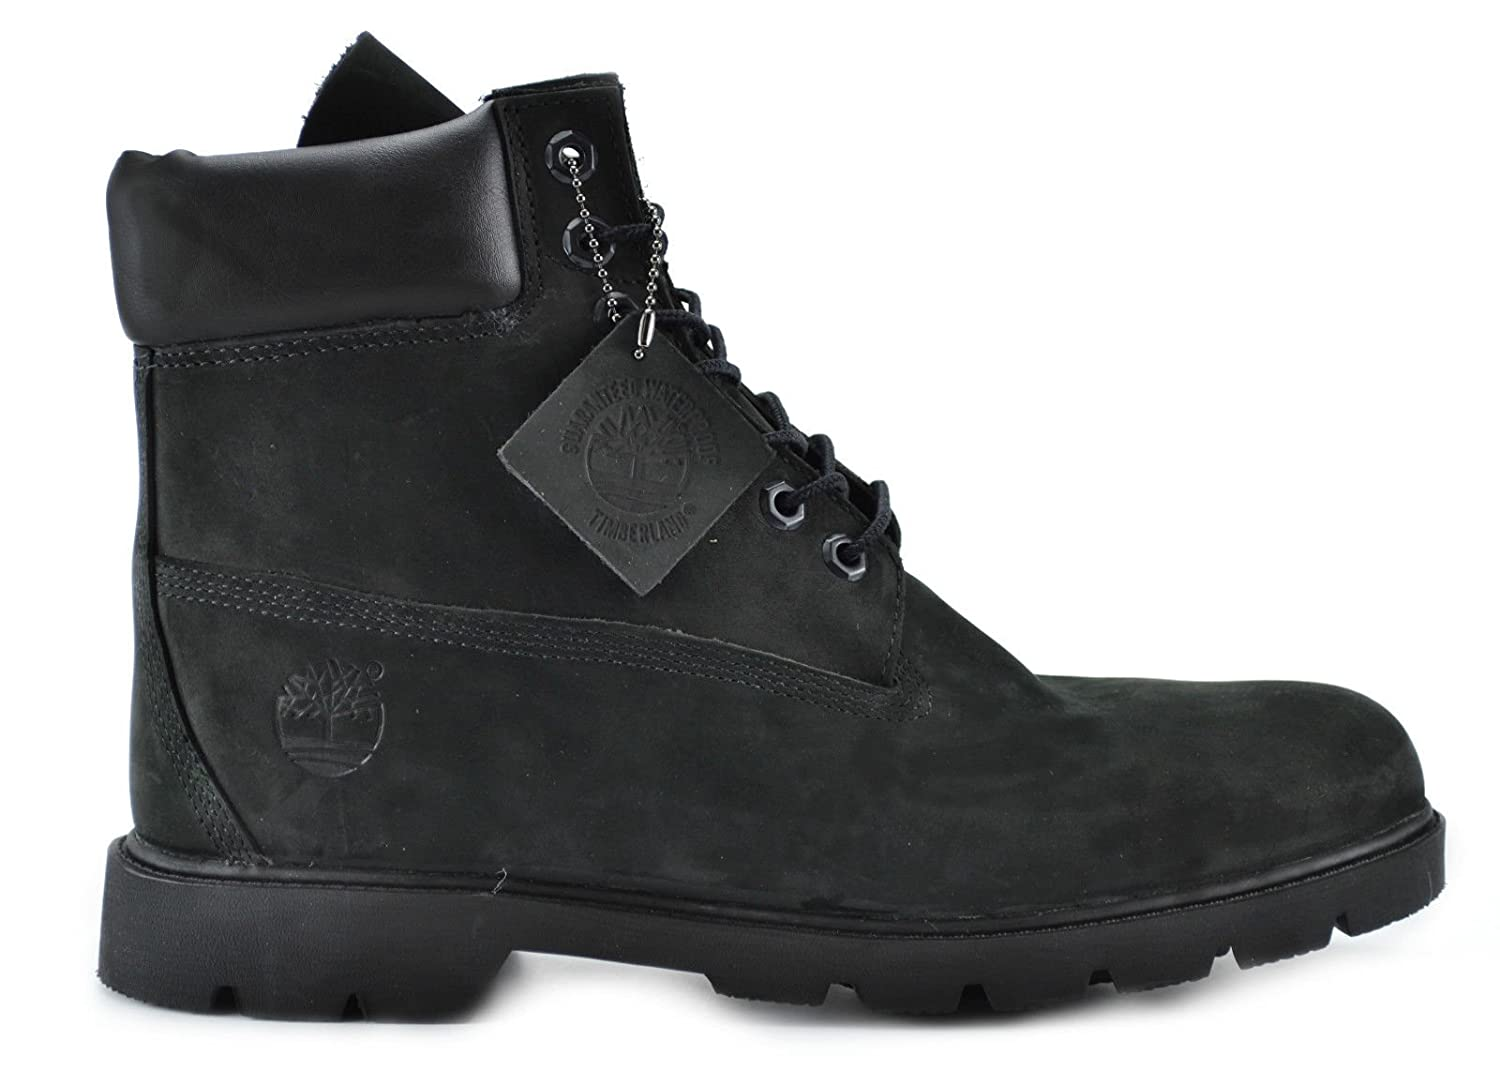 7b8b5db6bdd Timberland Men's 6-Inch Basic Waterproof Boots Black 19039